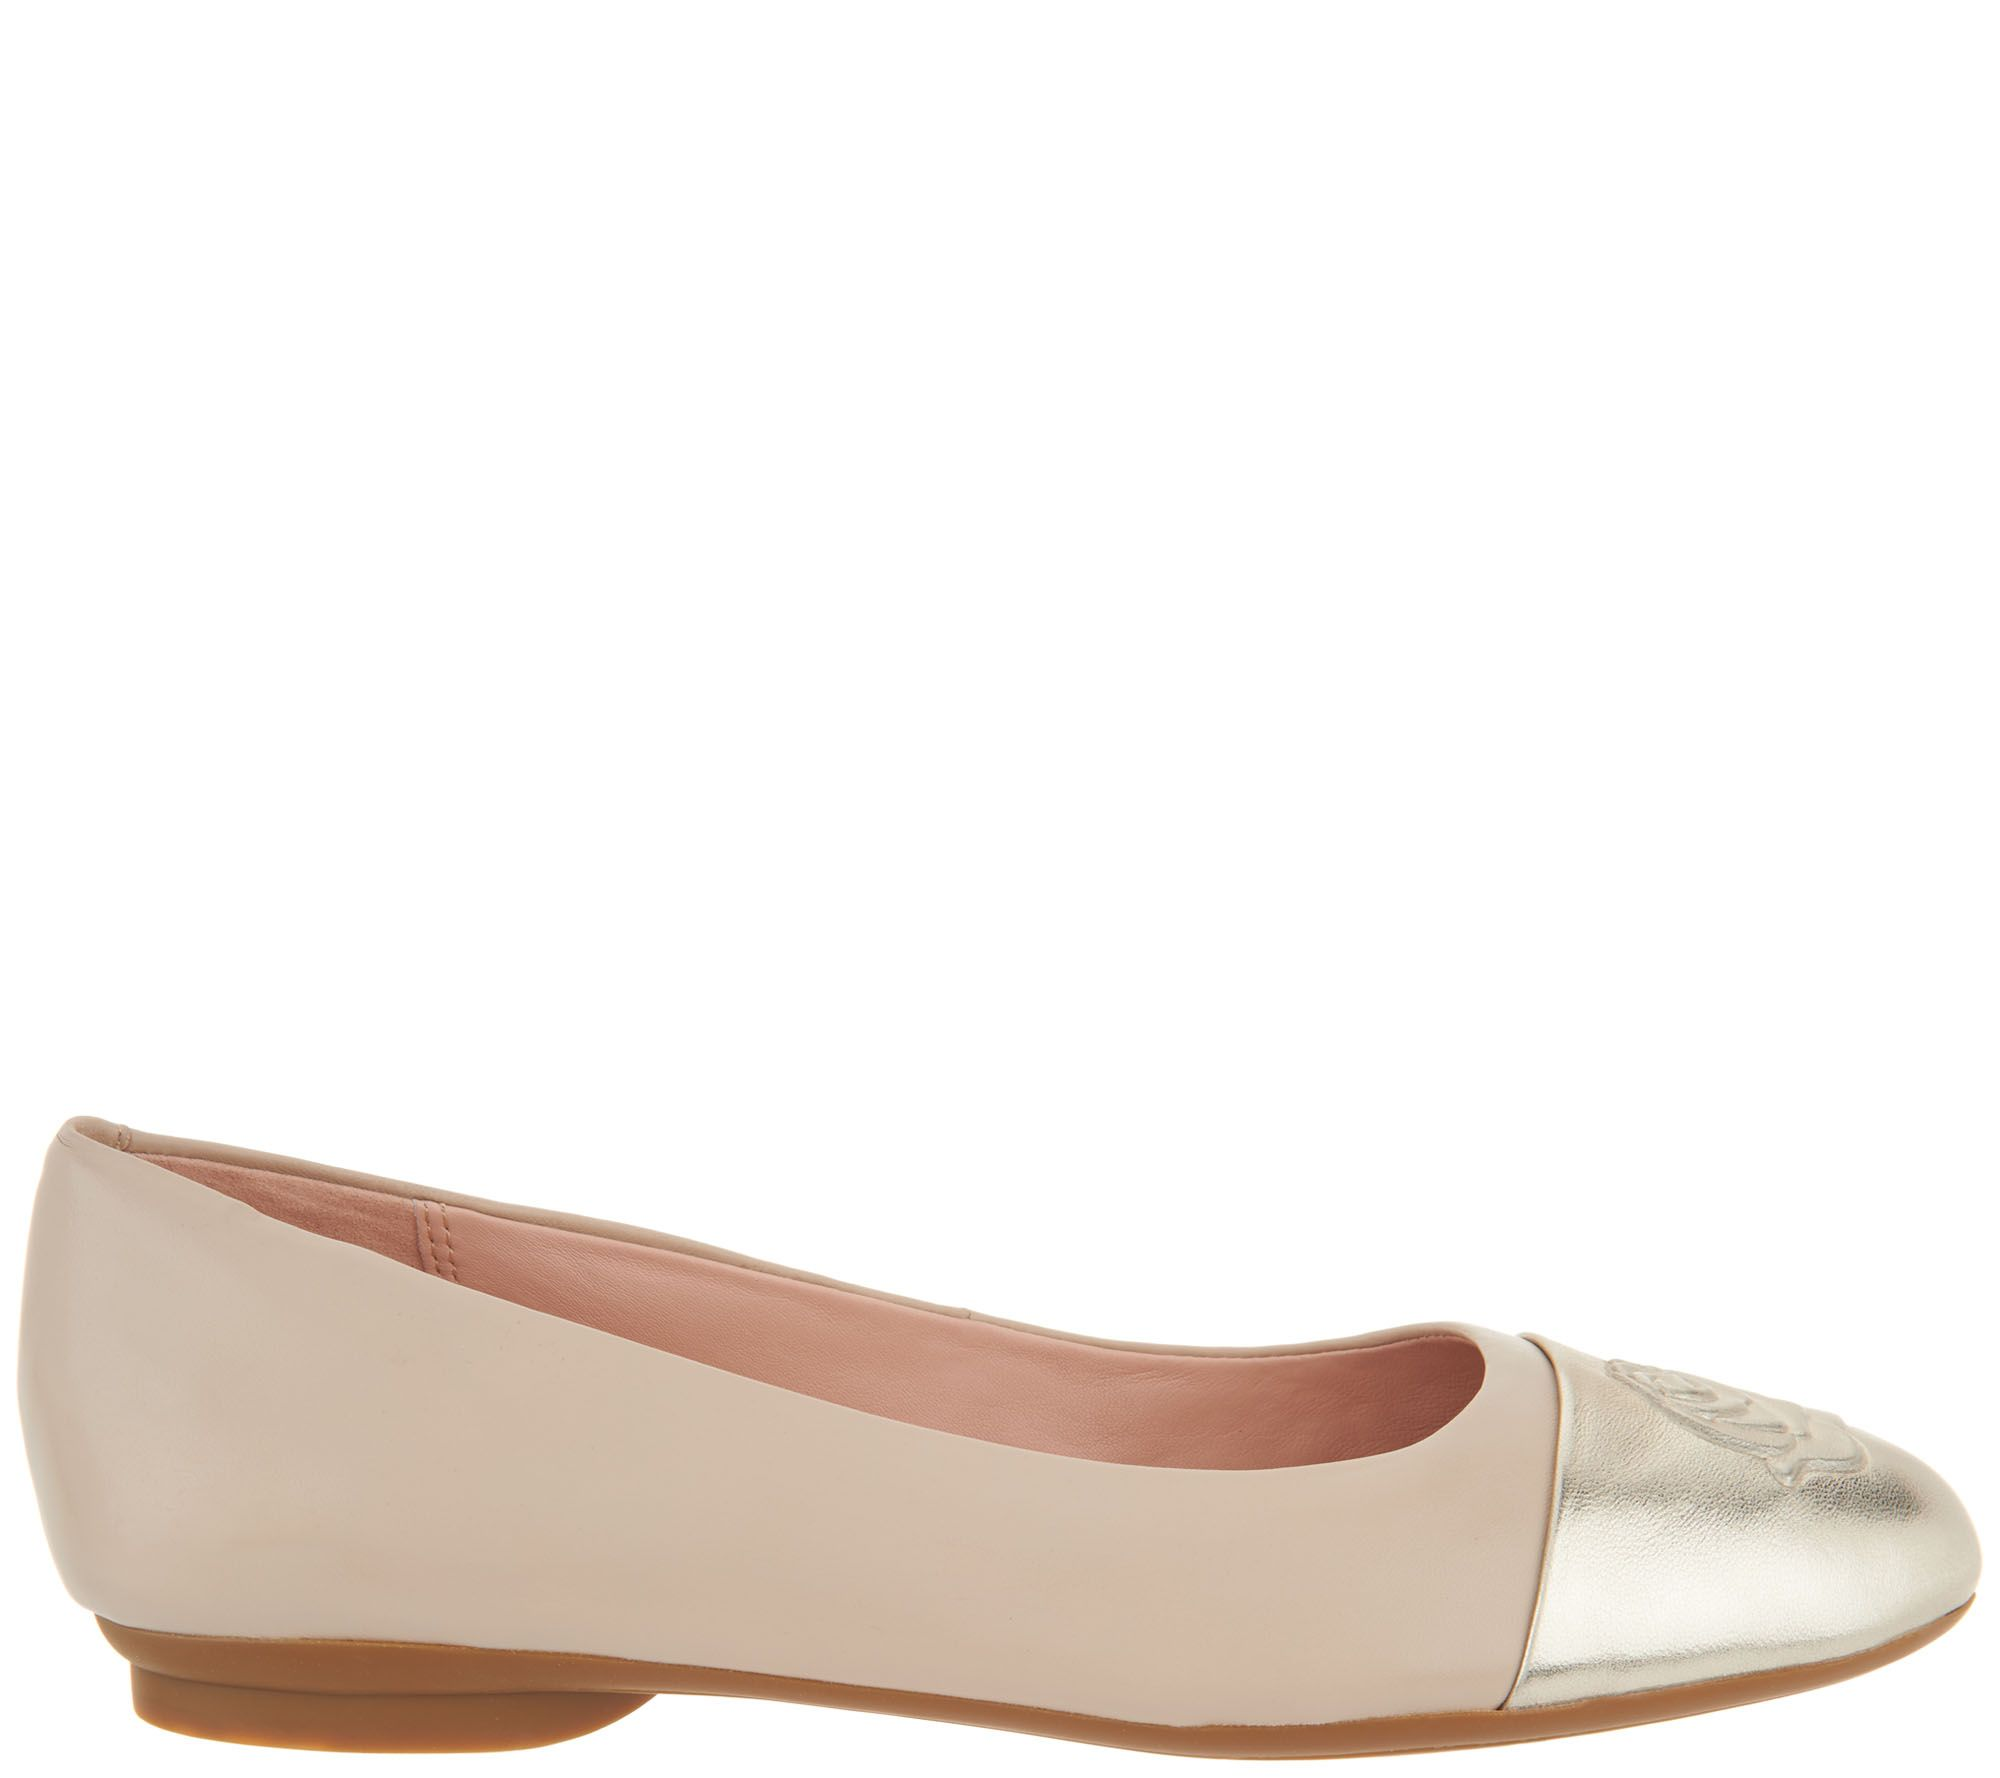 c2d606e58c4 Taryn Rose Leather Ballet Flats - Annabella - Page 1 — QVC.com